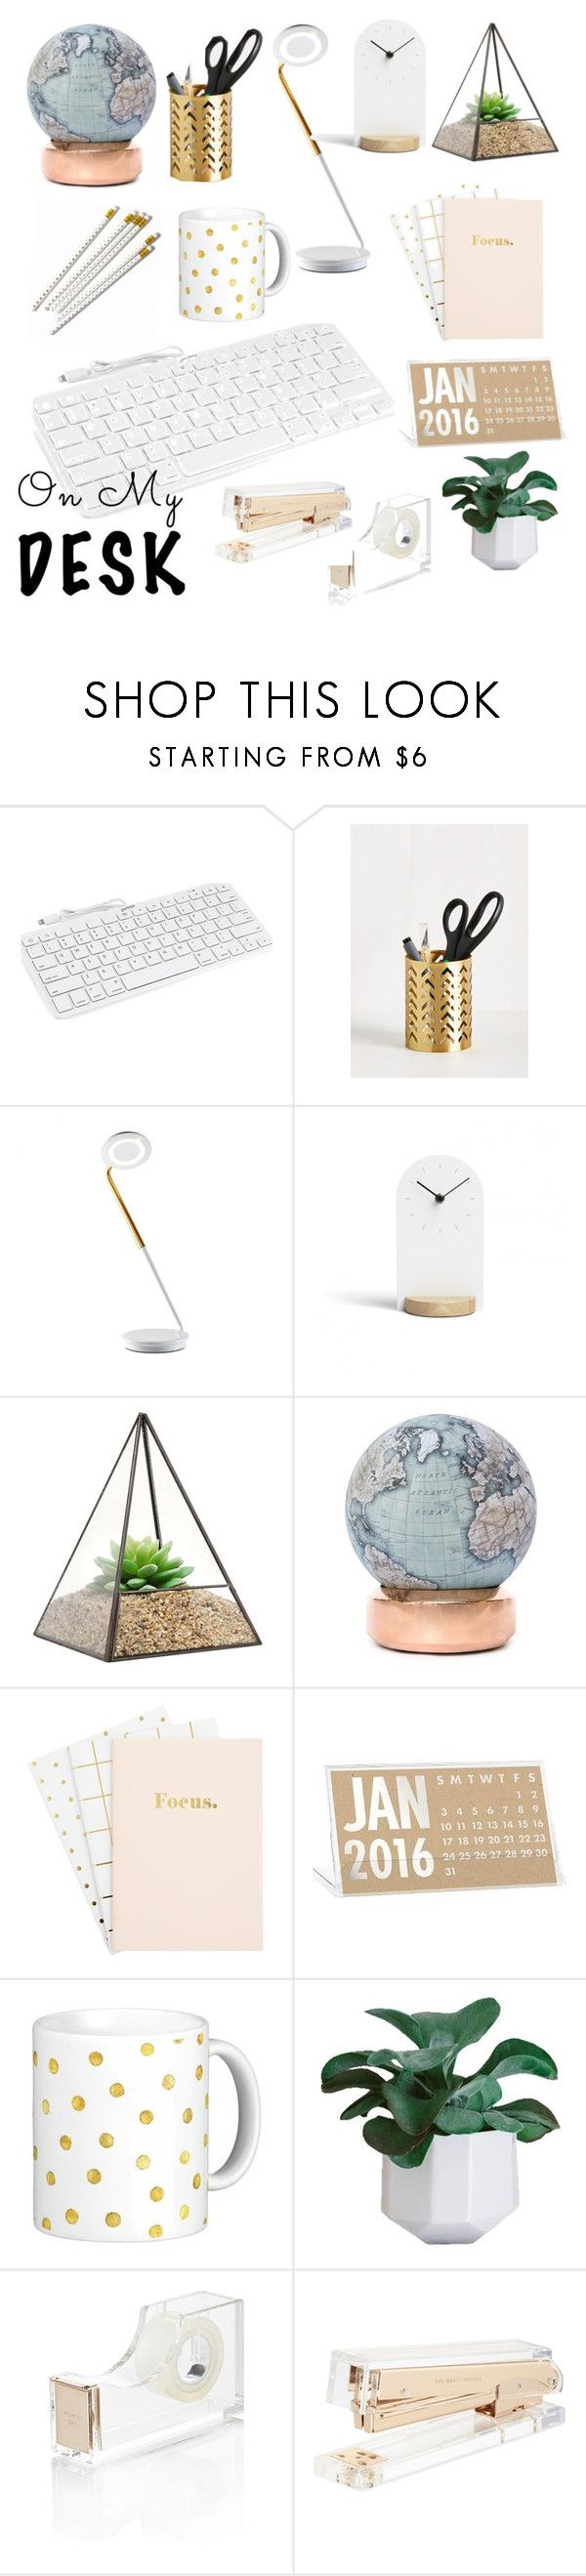 """On my Desk"" by dancebabe3 ❤ liked on Polyvore featuring interior, interiors, interior design, home, home decor, interior decorating, Minimal, Bellerby & Co, Kate Spade and onmydesk"